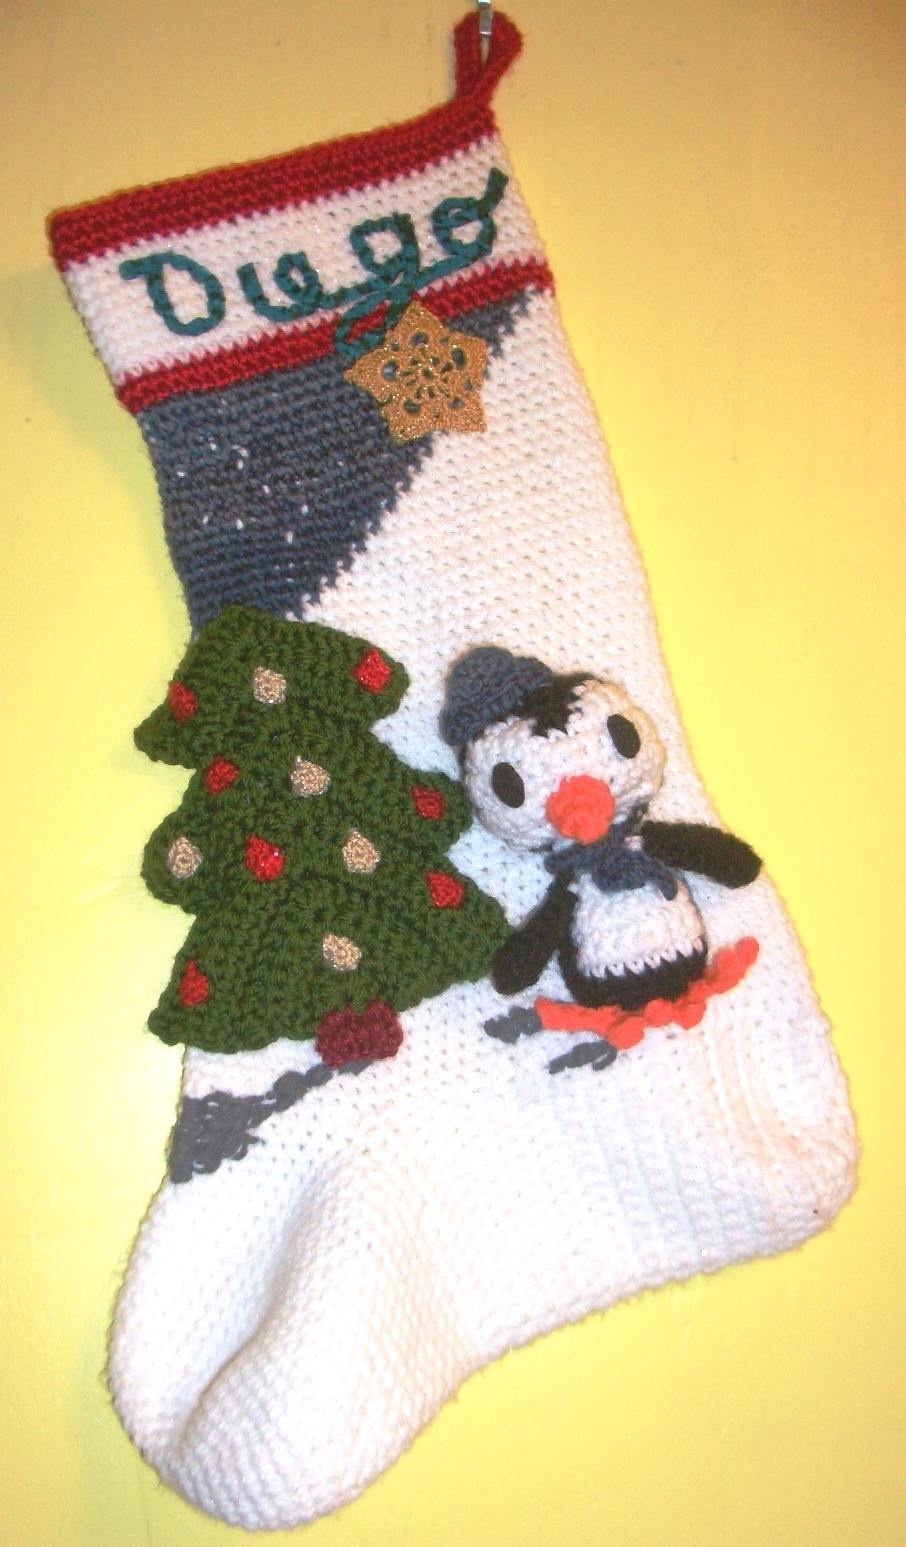 Make your own crochet Christmas stocking by working up any of these patterns. Hang them above the fireplace, or make mini ones as ornaments to hang on the tree.